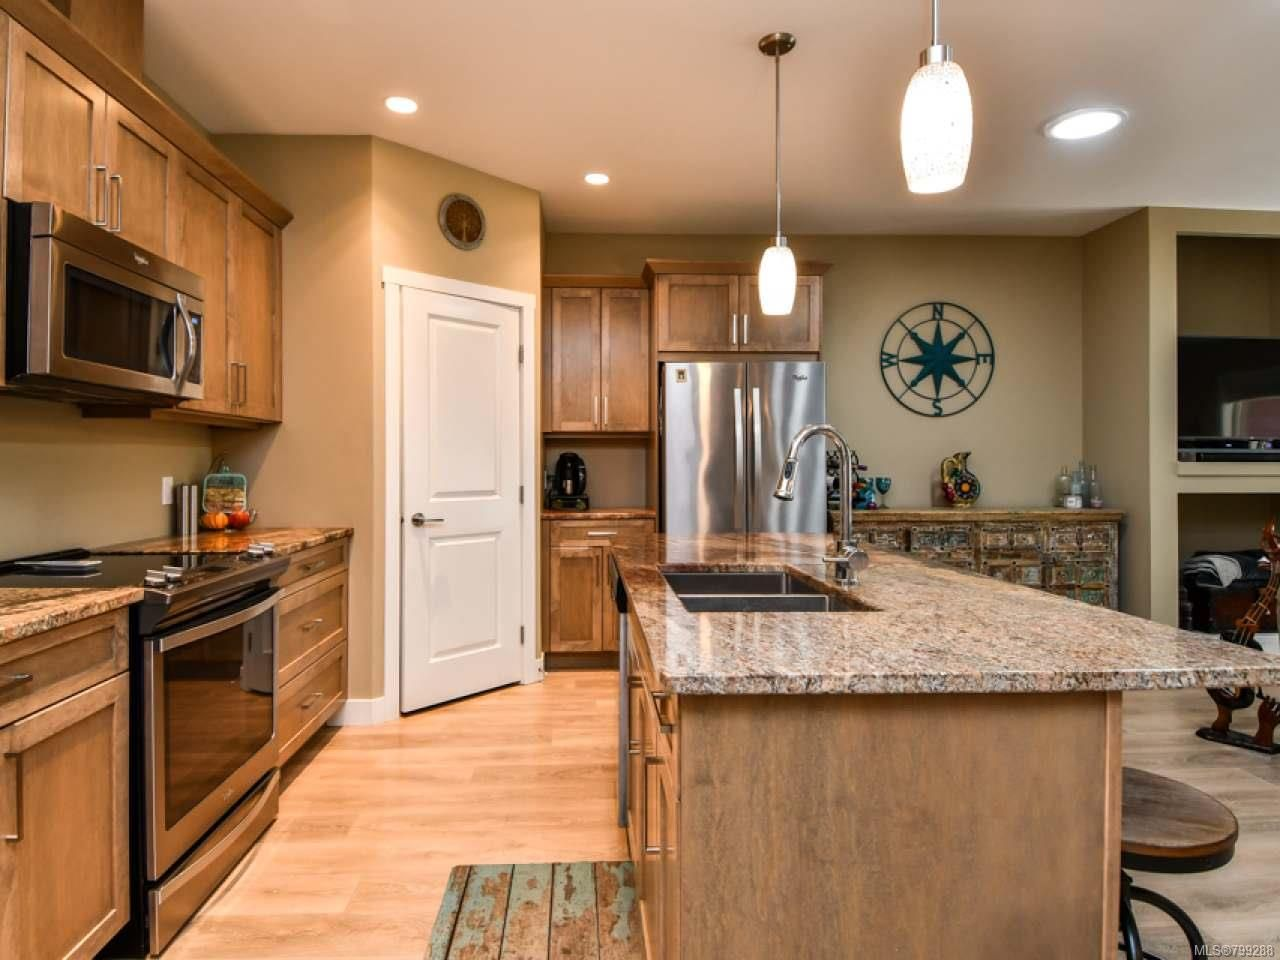 Photo 4: Photos: 11 301 Arizona Dr in CAMPBELL RIVER: CR Willow Point Half Duplex for sale (Campbell River)  : MLS®# 799288